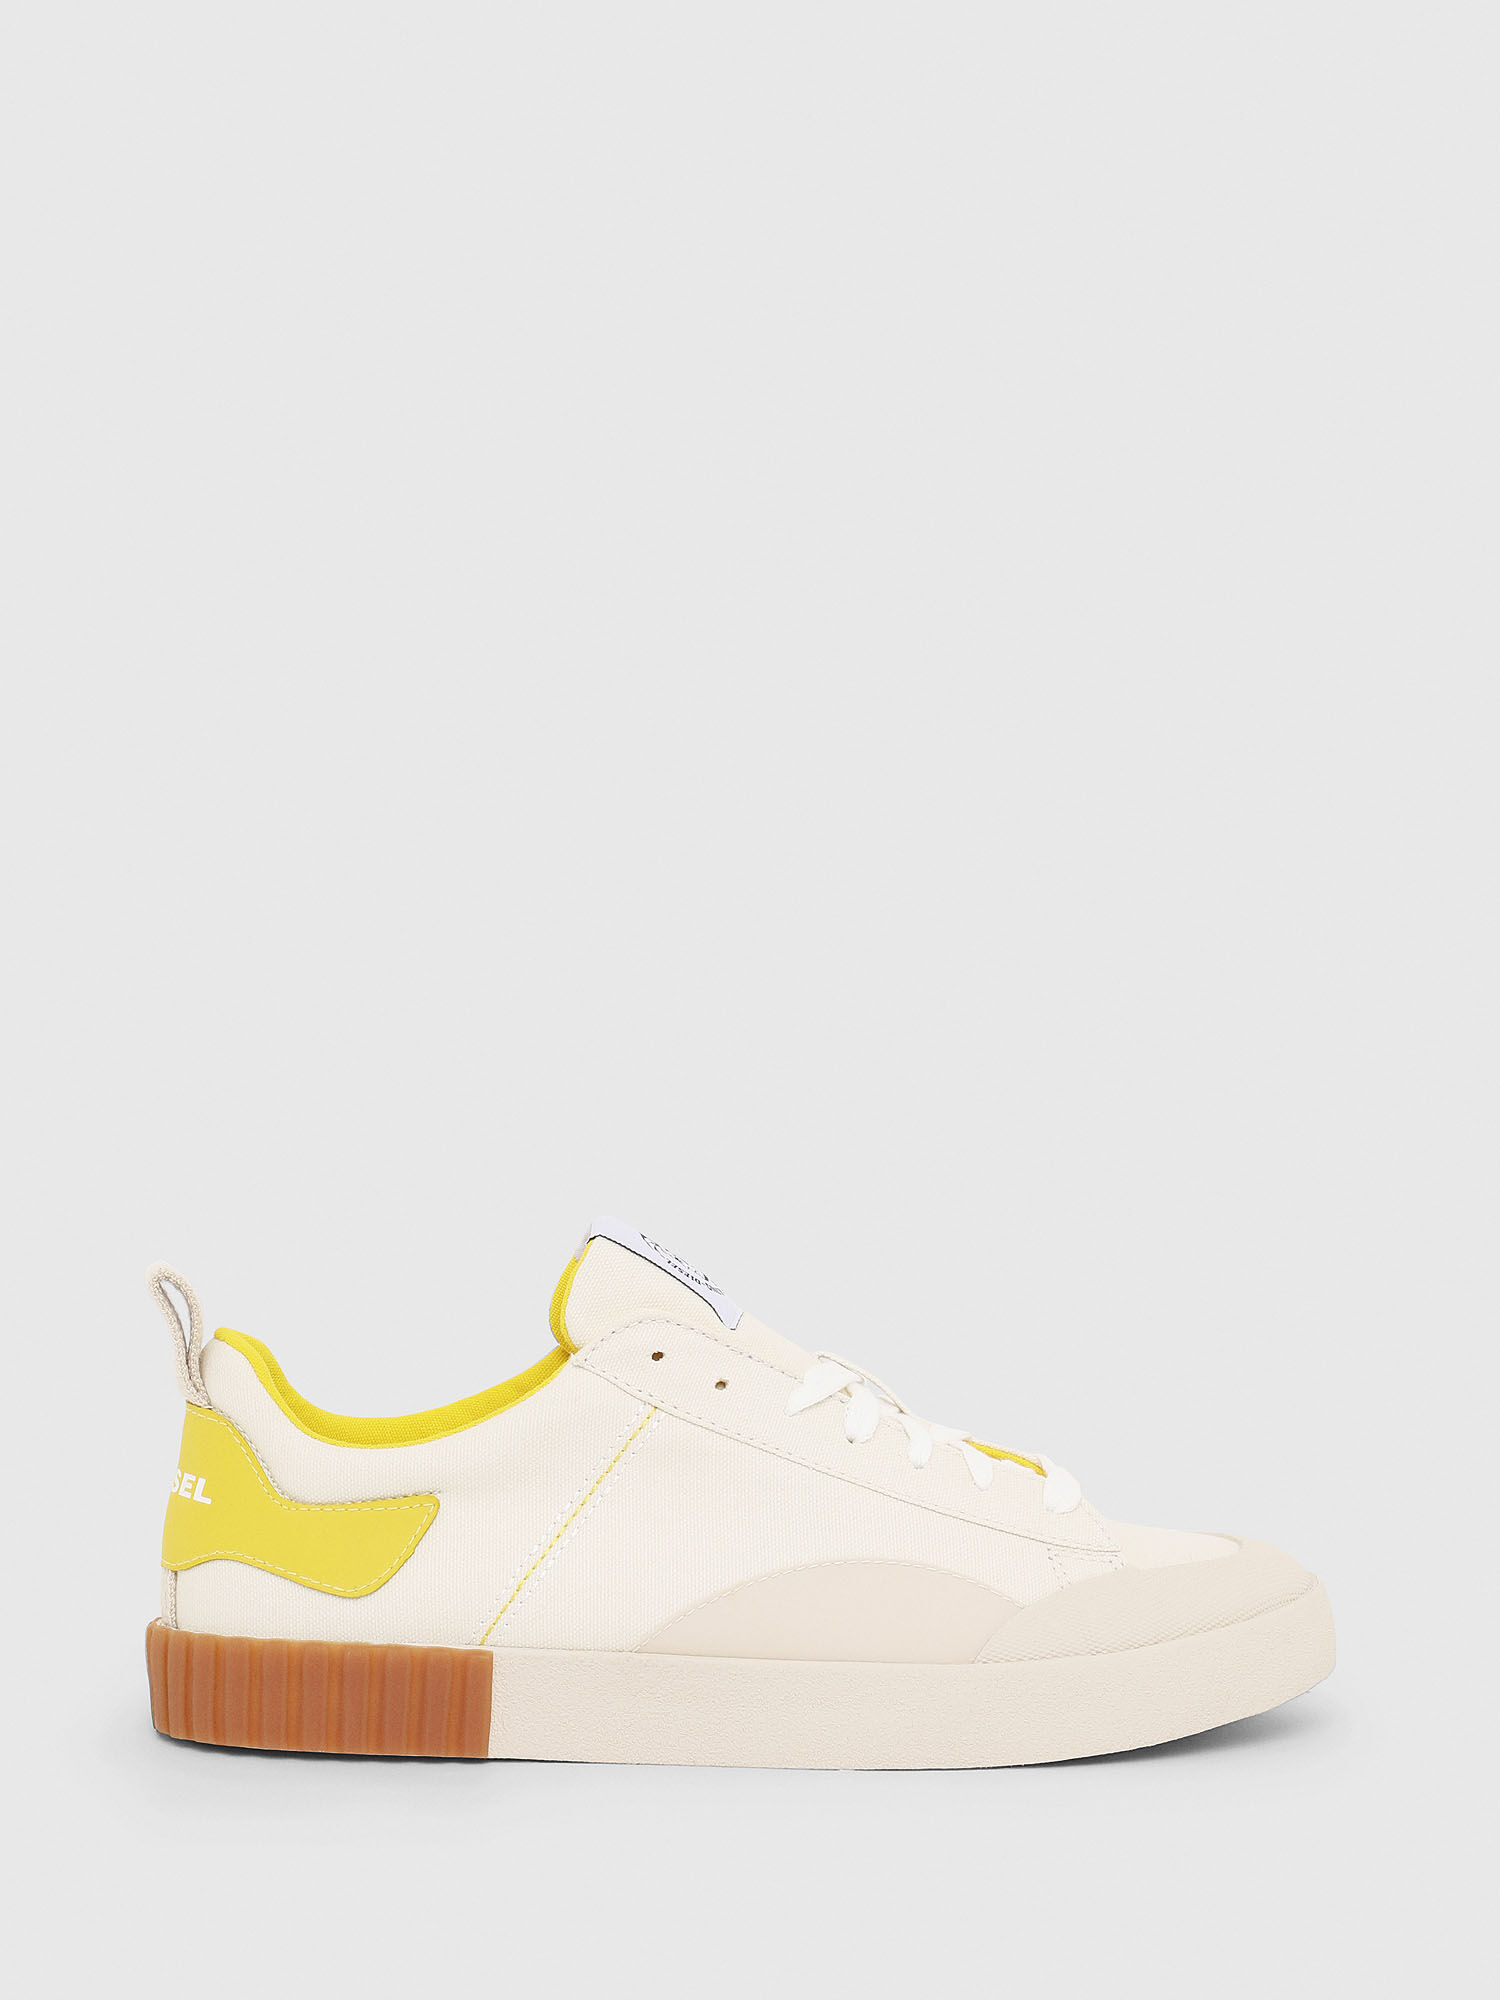 S-BULLY LC Man: Low-top sneakers in